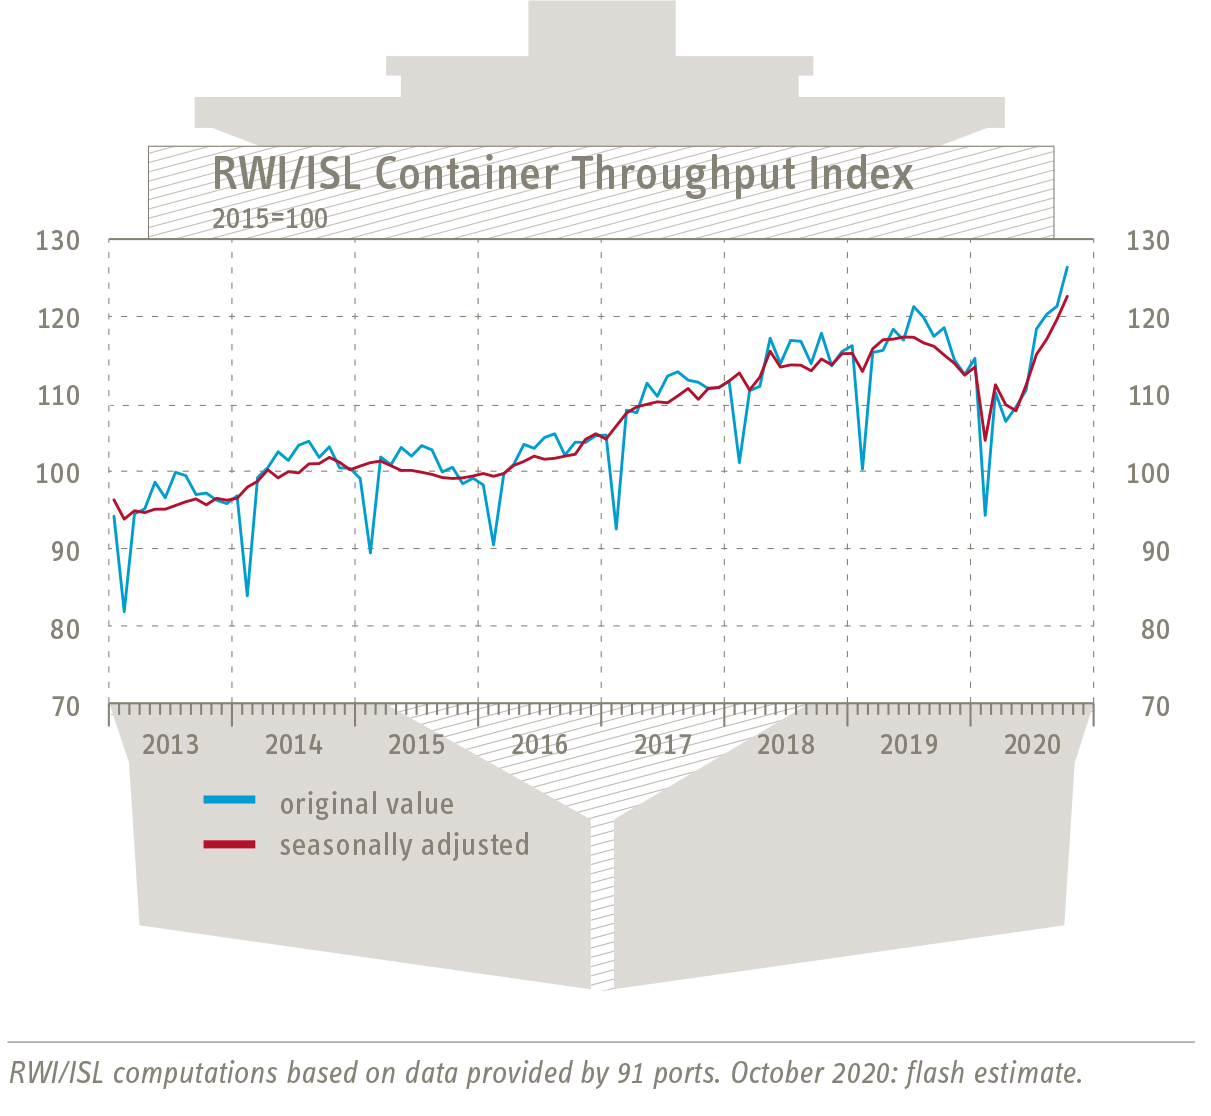 RWI/ISL Container Throughput Index: Strong increase in October